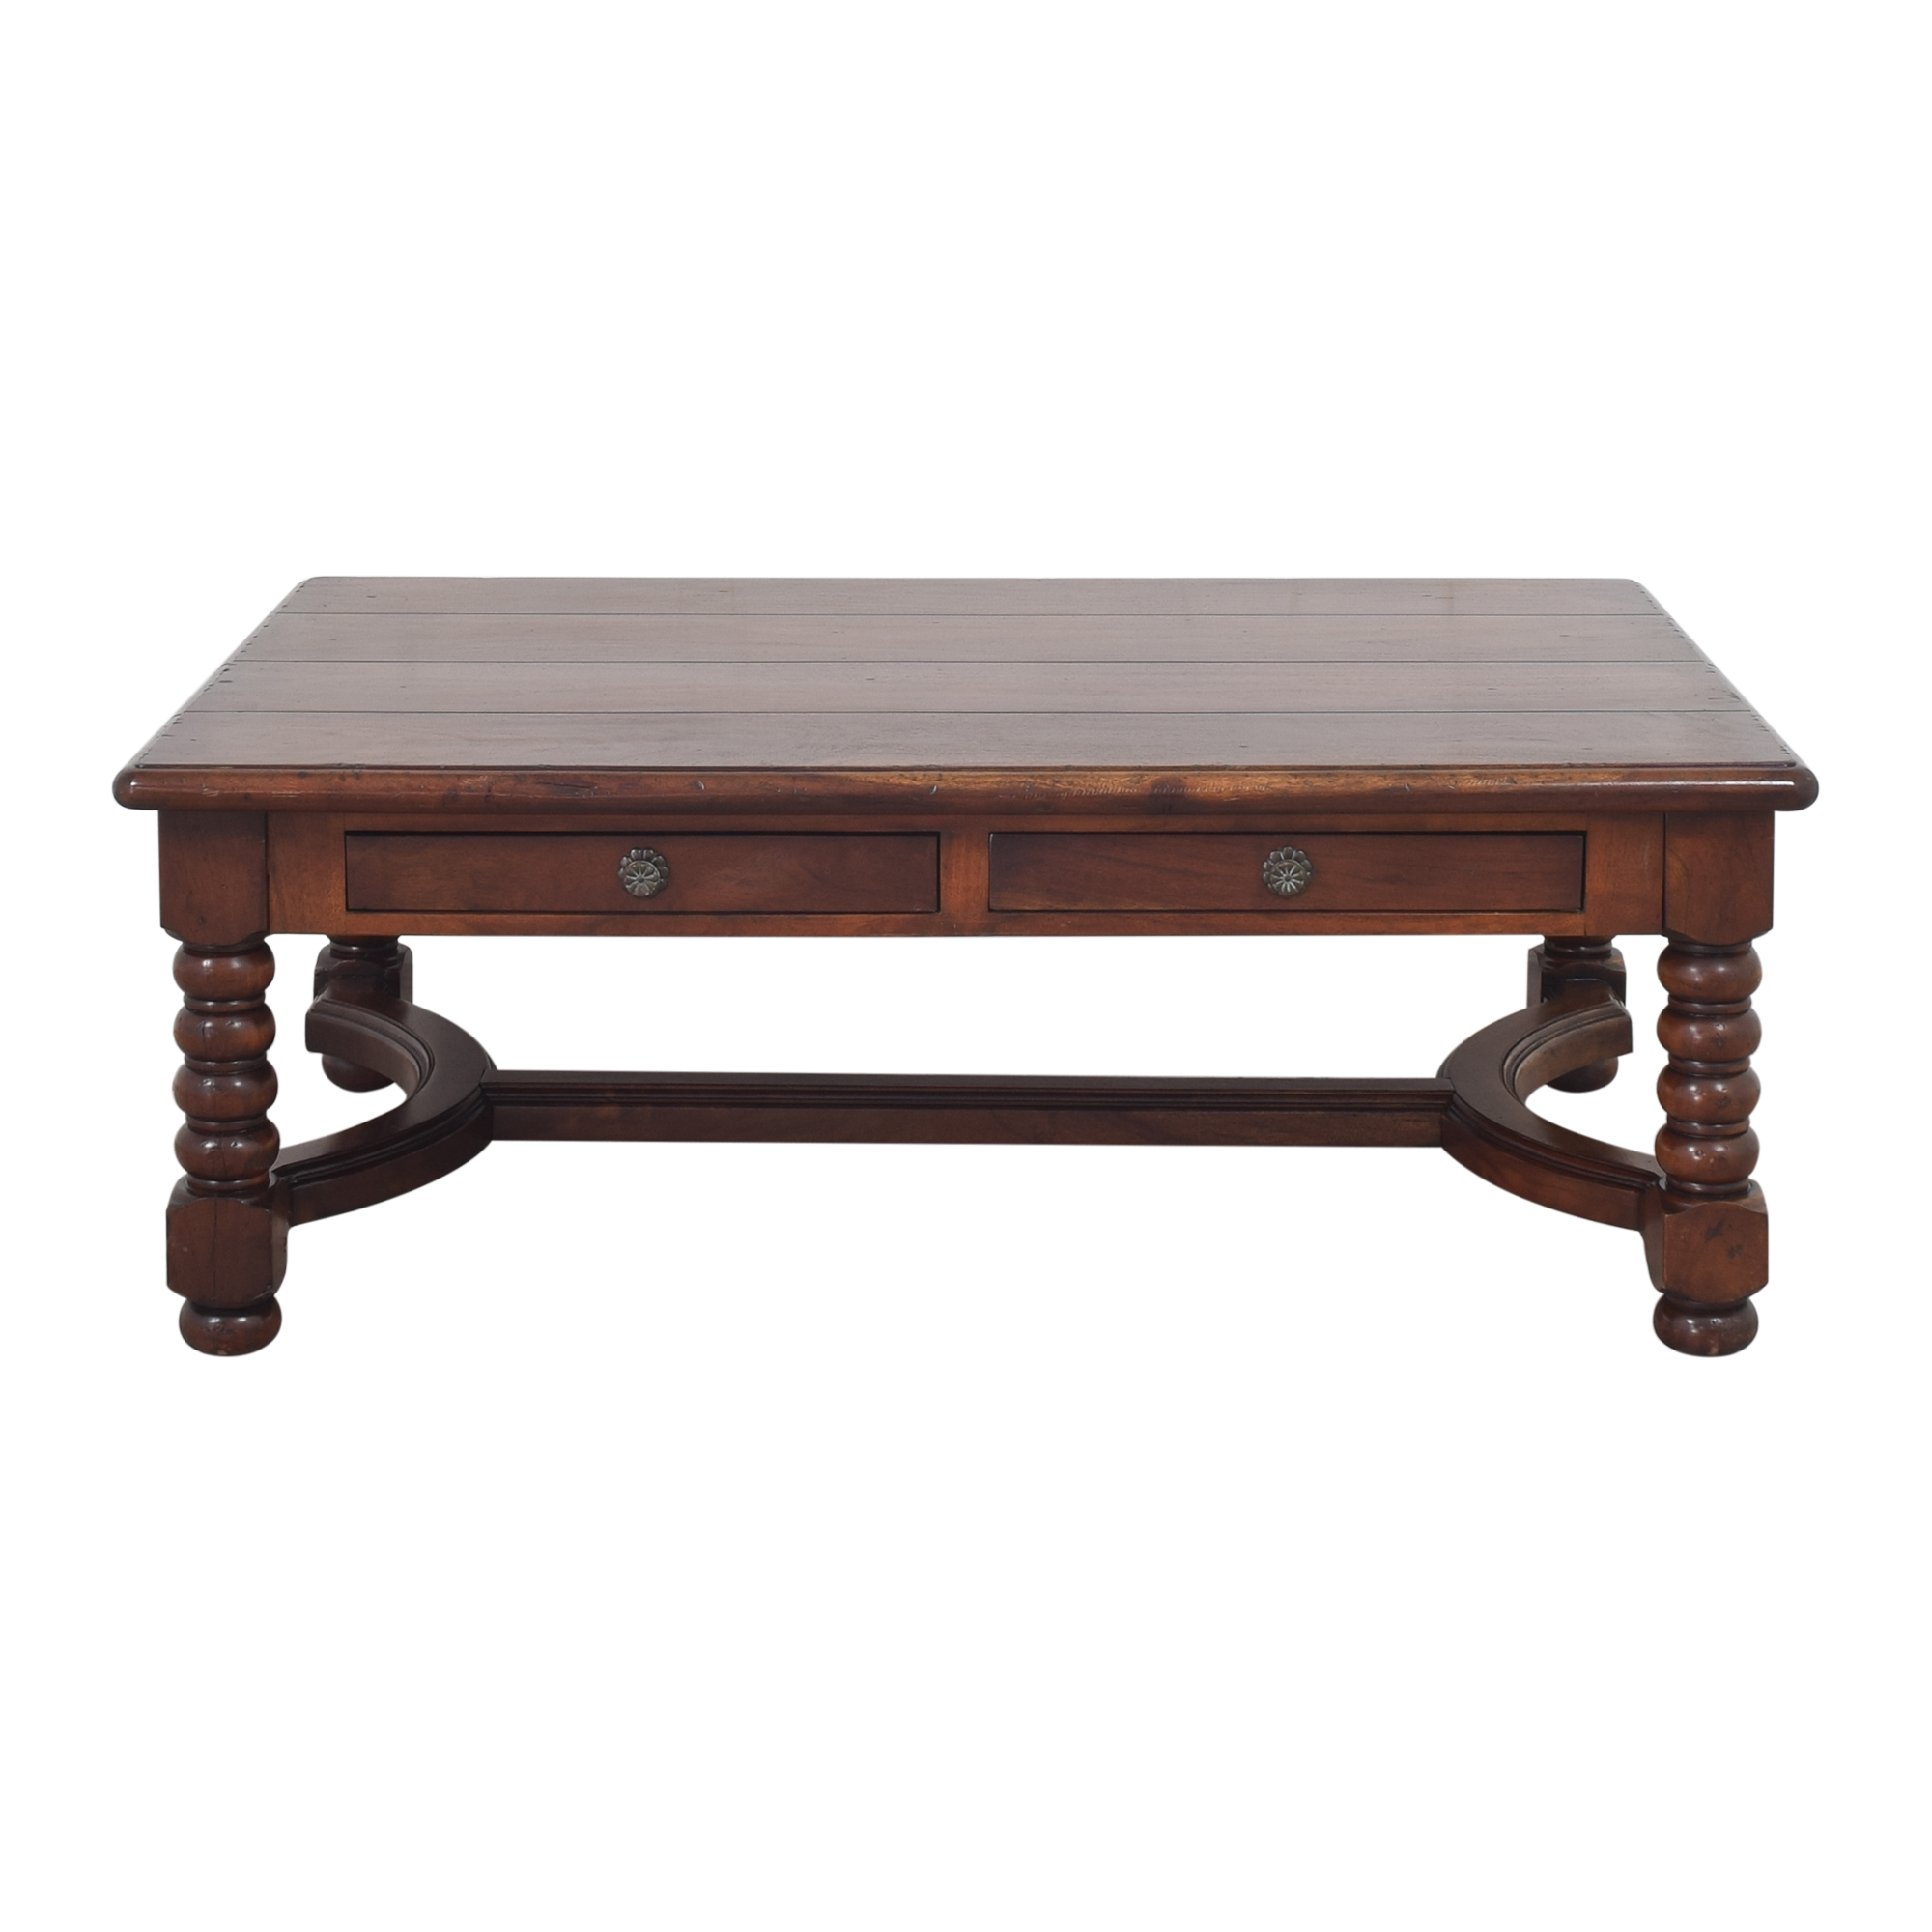 Four Drawer Storage Coffee Table dark brown